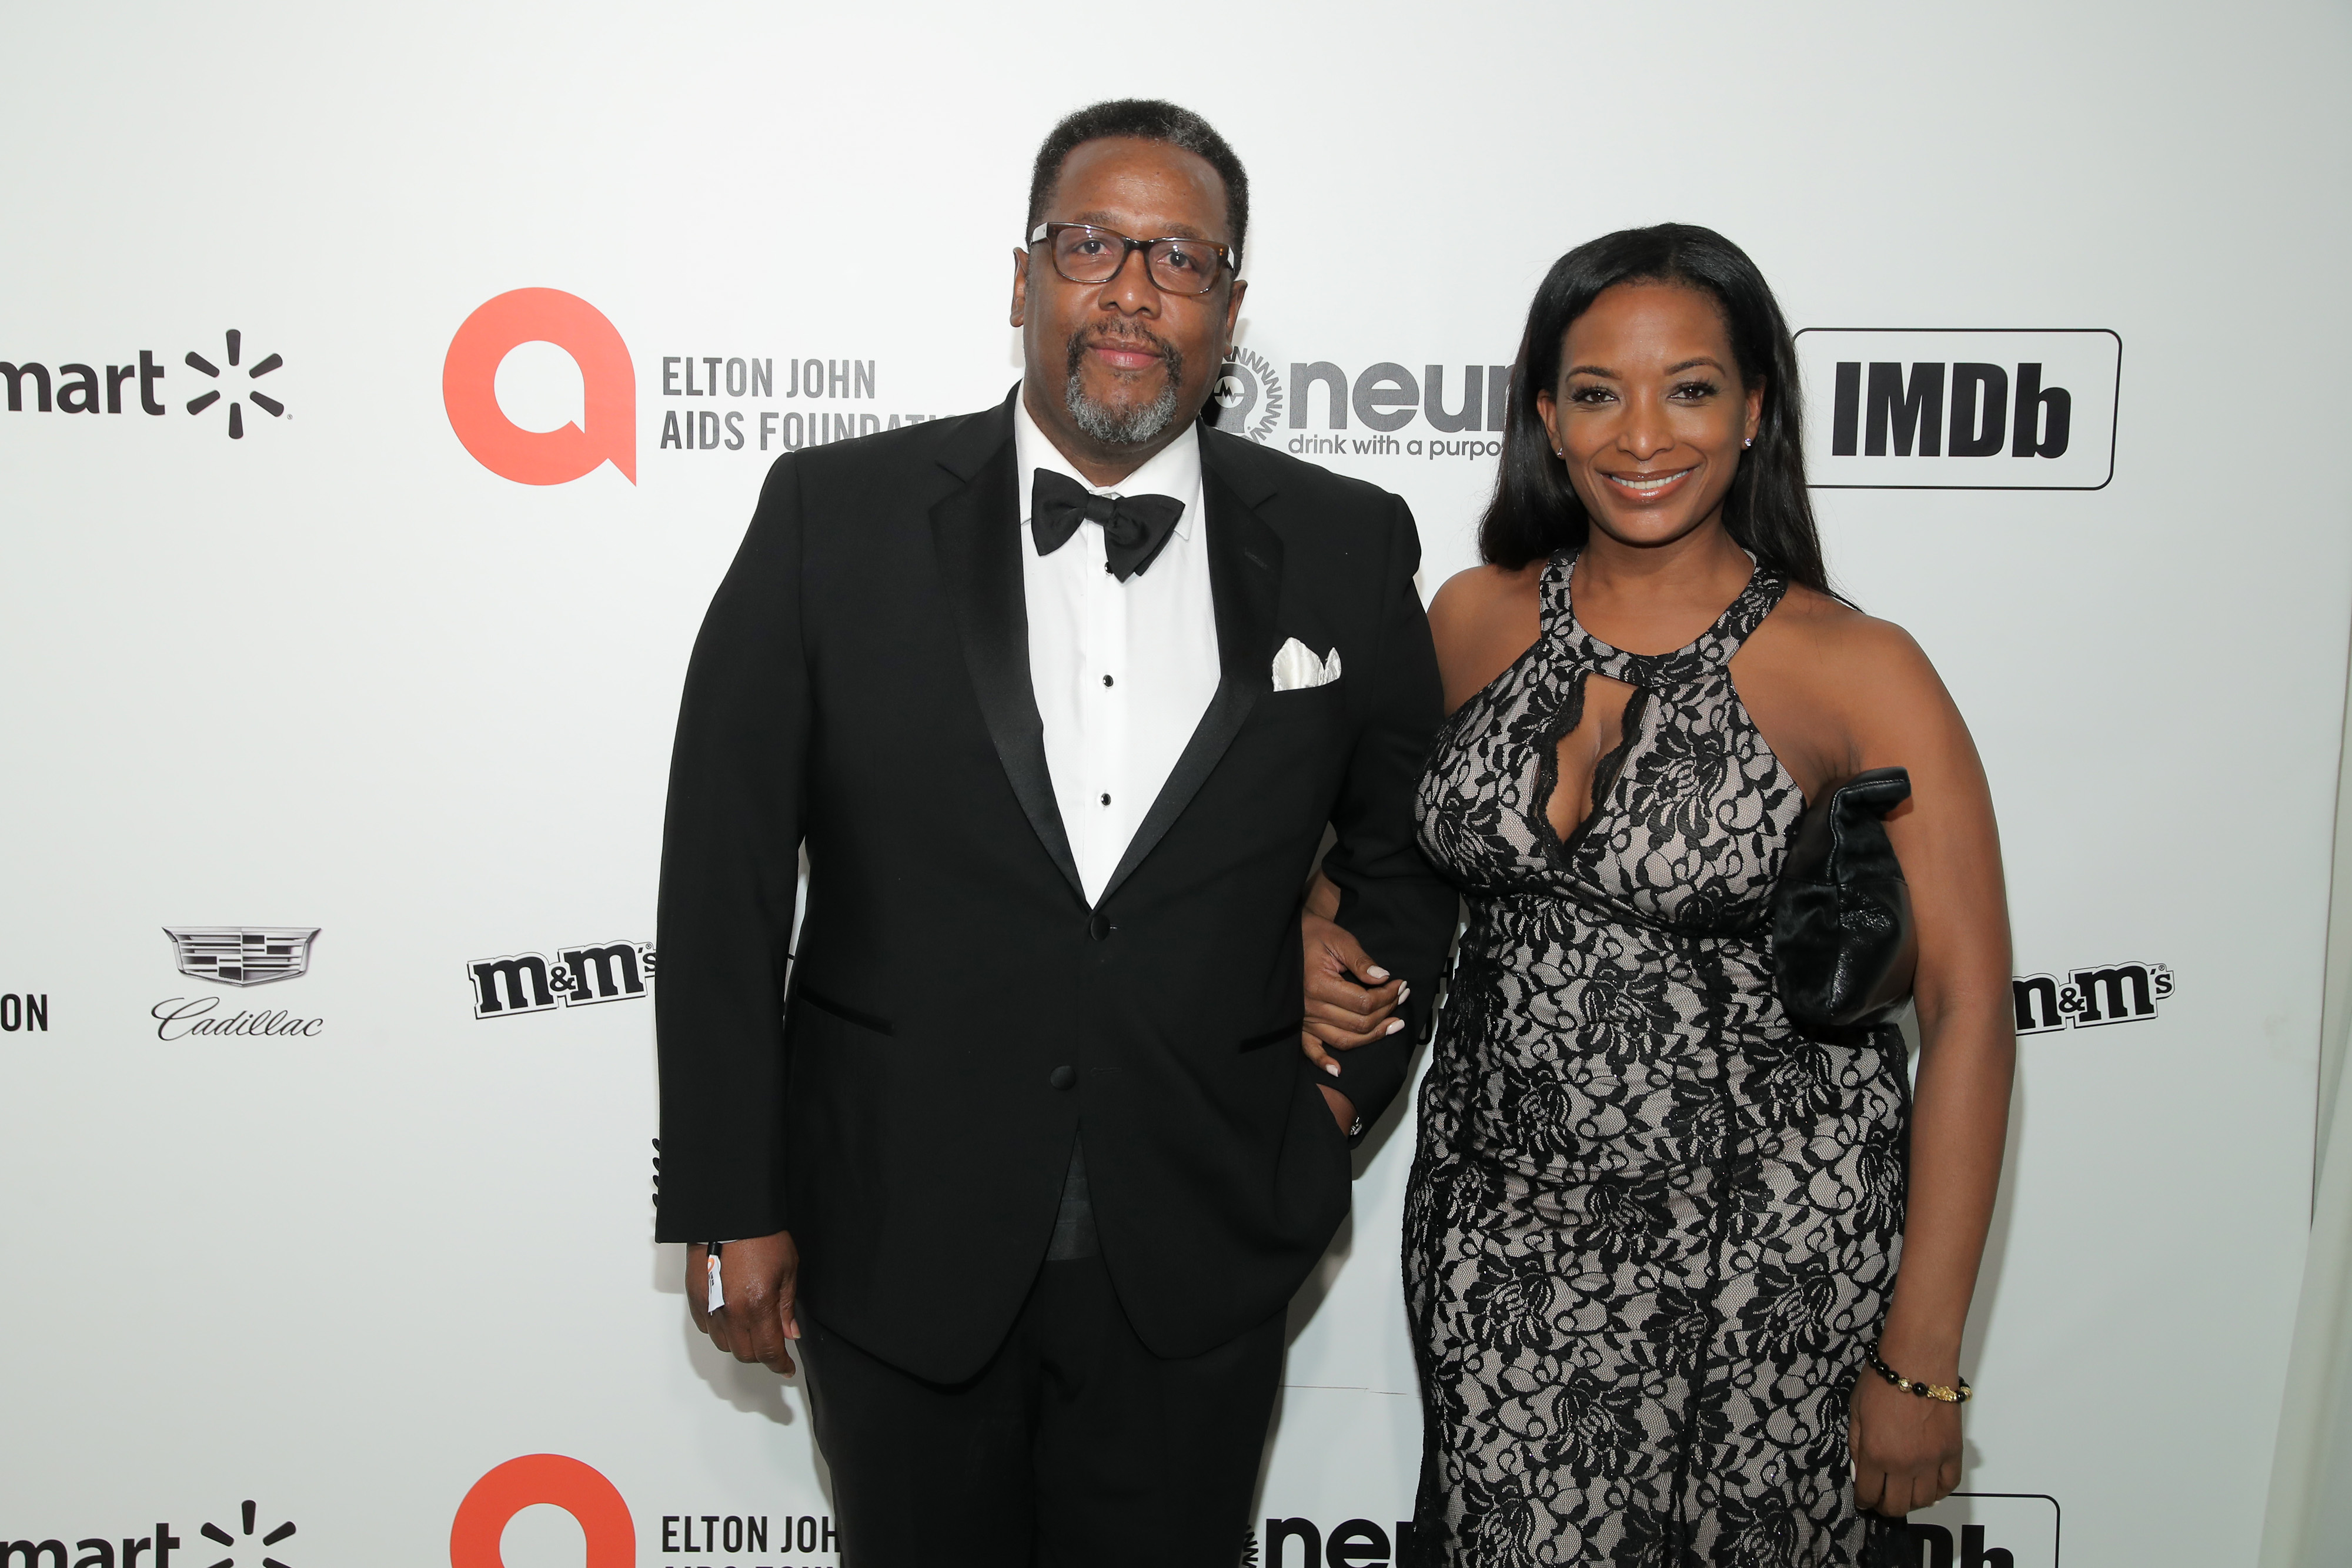 WEST HOLLYWOOD, CALIFORNIA - FEBRUARY 09: (L-R) Wendell Pierce and Erika Woods attend the 28th Annual Elton John AIDS Foundation Academy Awards Viewing Party sponsored by IMDb, Neuro Drinks and Walmart on February 09, 2020 in West Hollywood, California. (Photo by Jemal Countess/Getty Images)